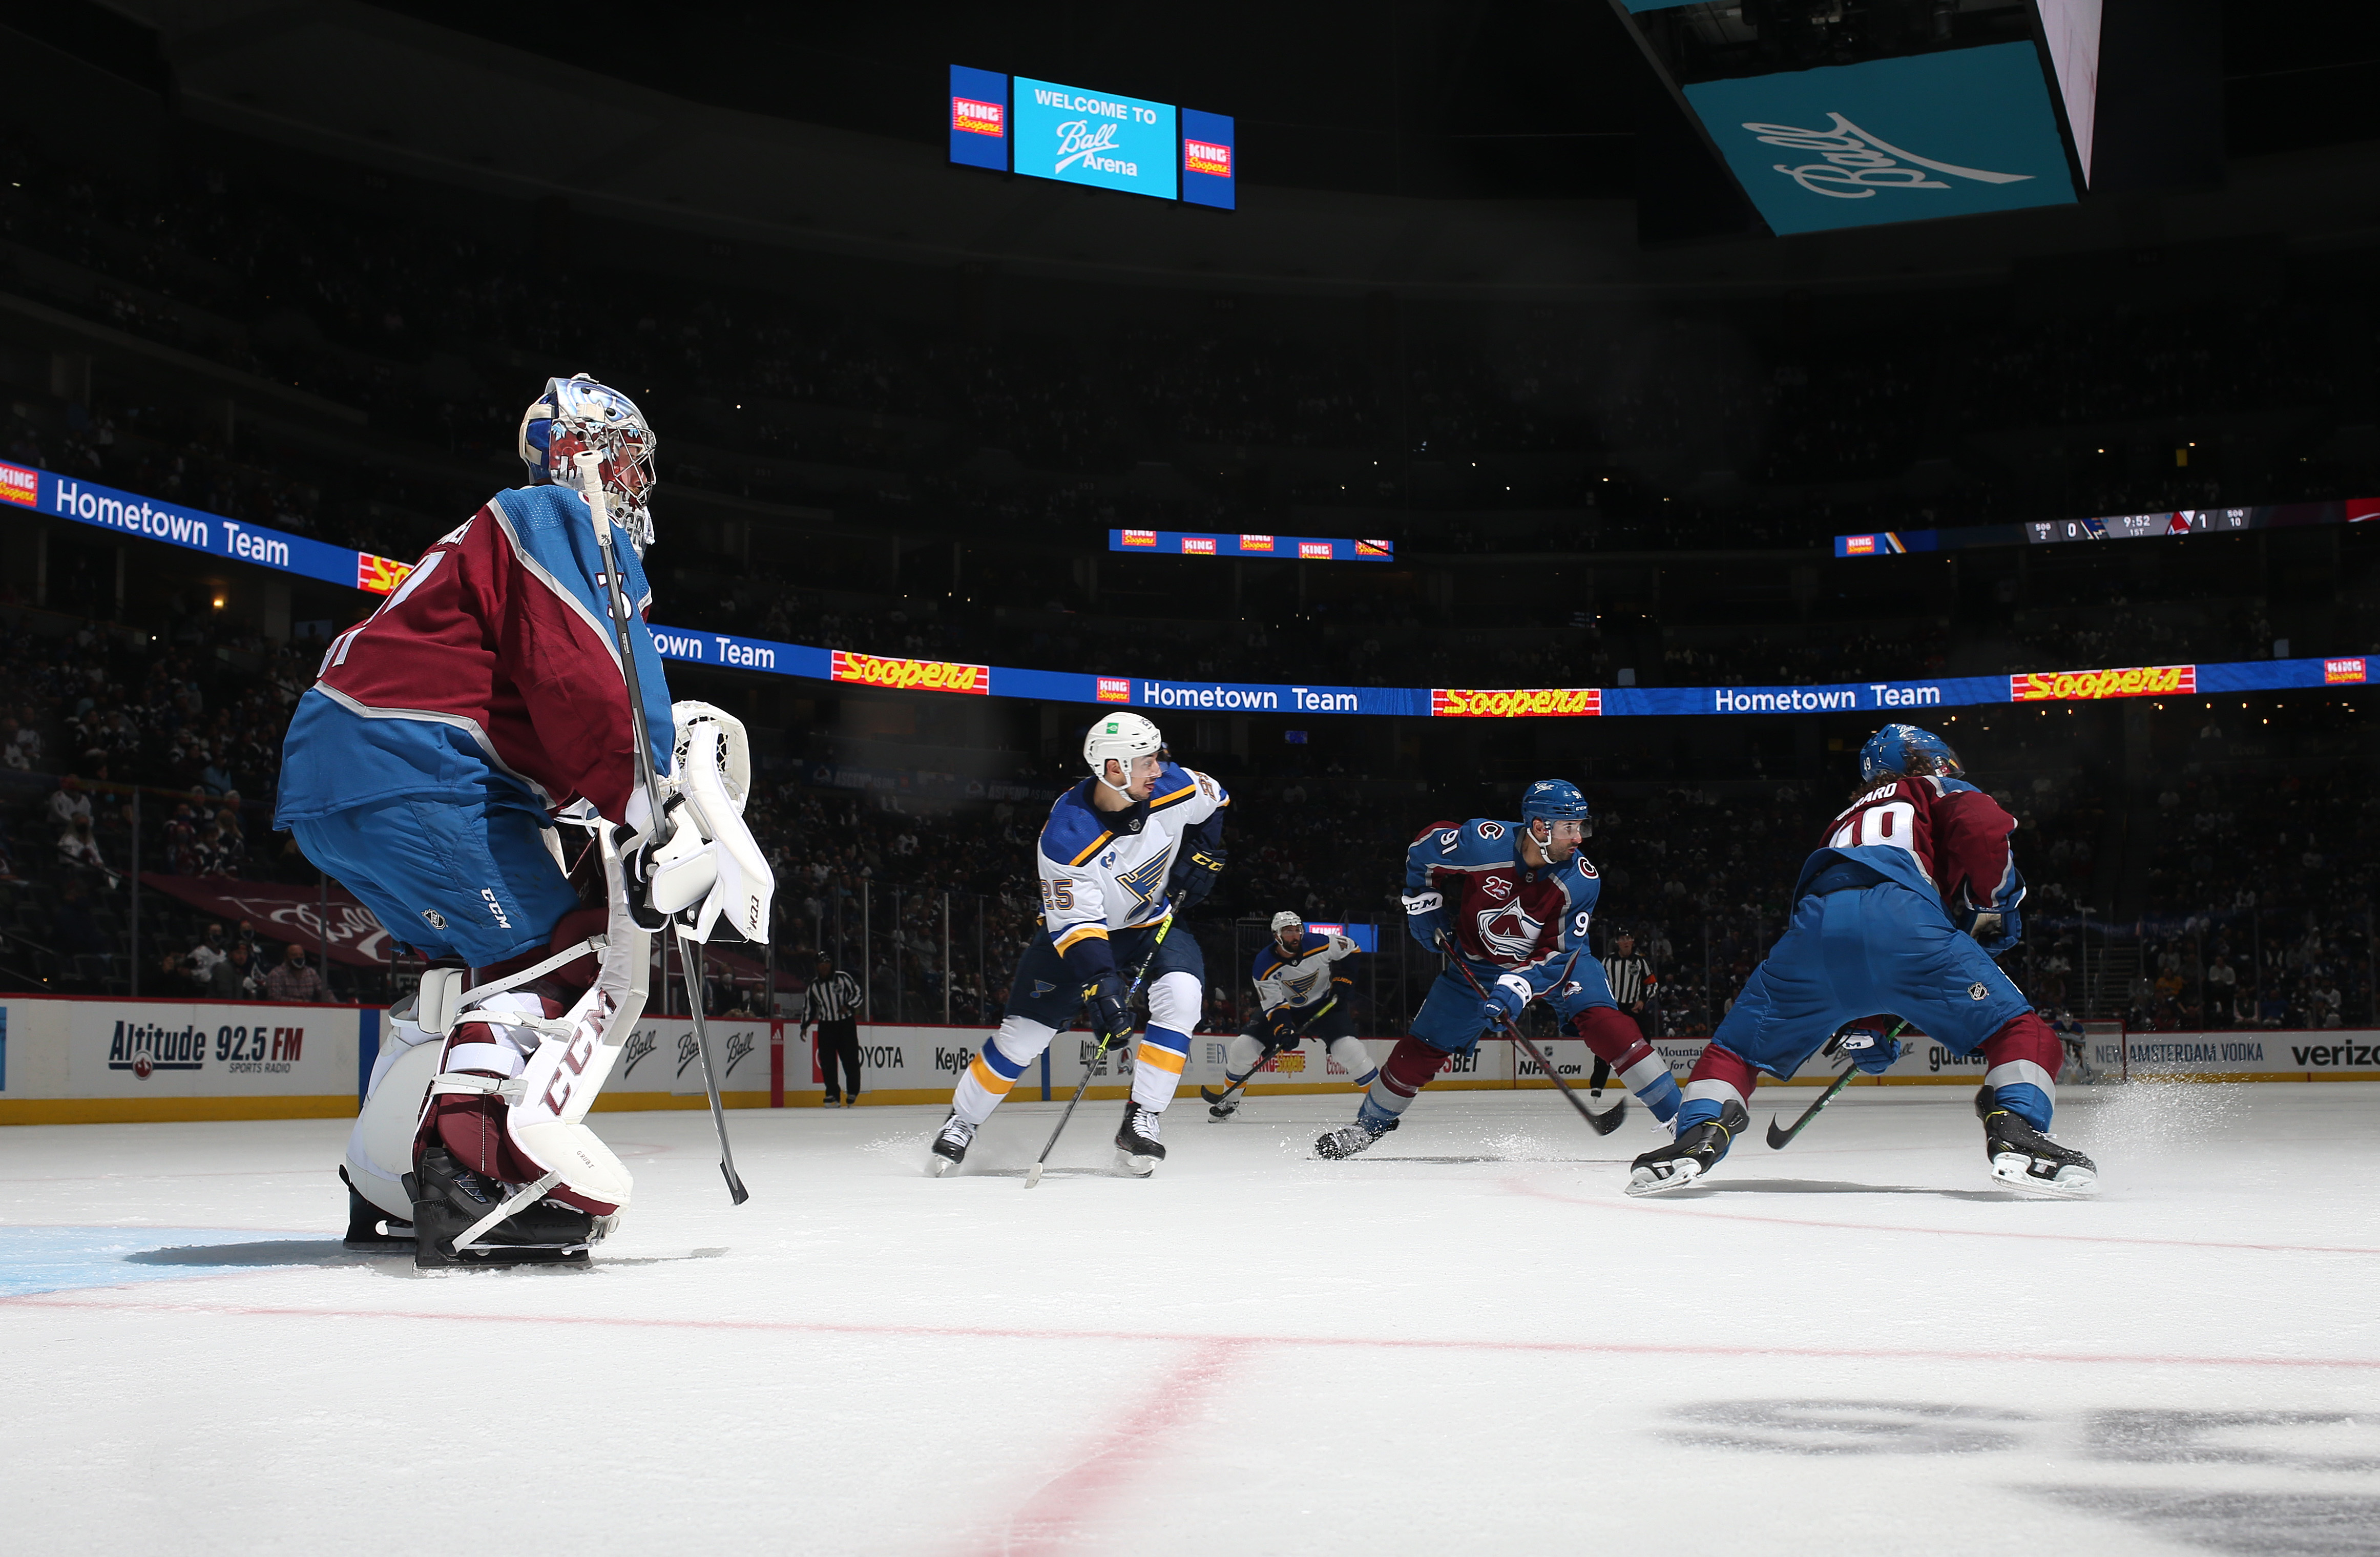 Goaltender Philipp Grubauer #31 of the Colorado Avalanche stands ready against the St Louis Blues in Game Two of the First Round of the 2021 Stanley Cup Playoffs at Ball Arena on May 19, 2021 in Denver, Colorado.